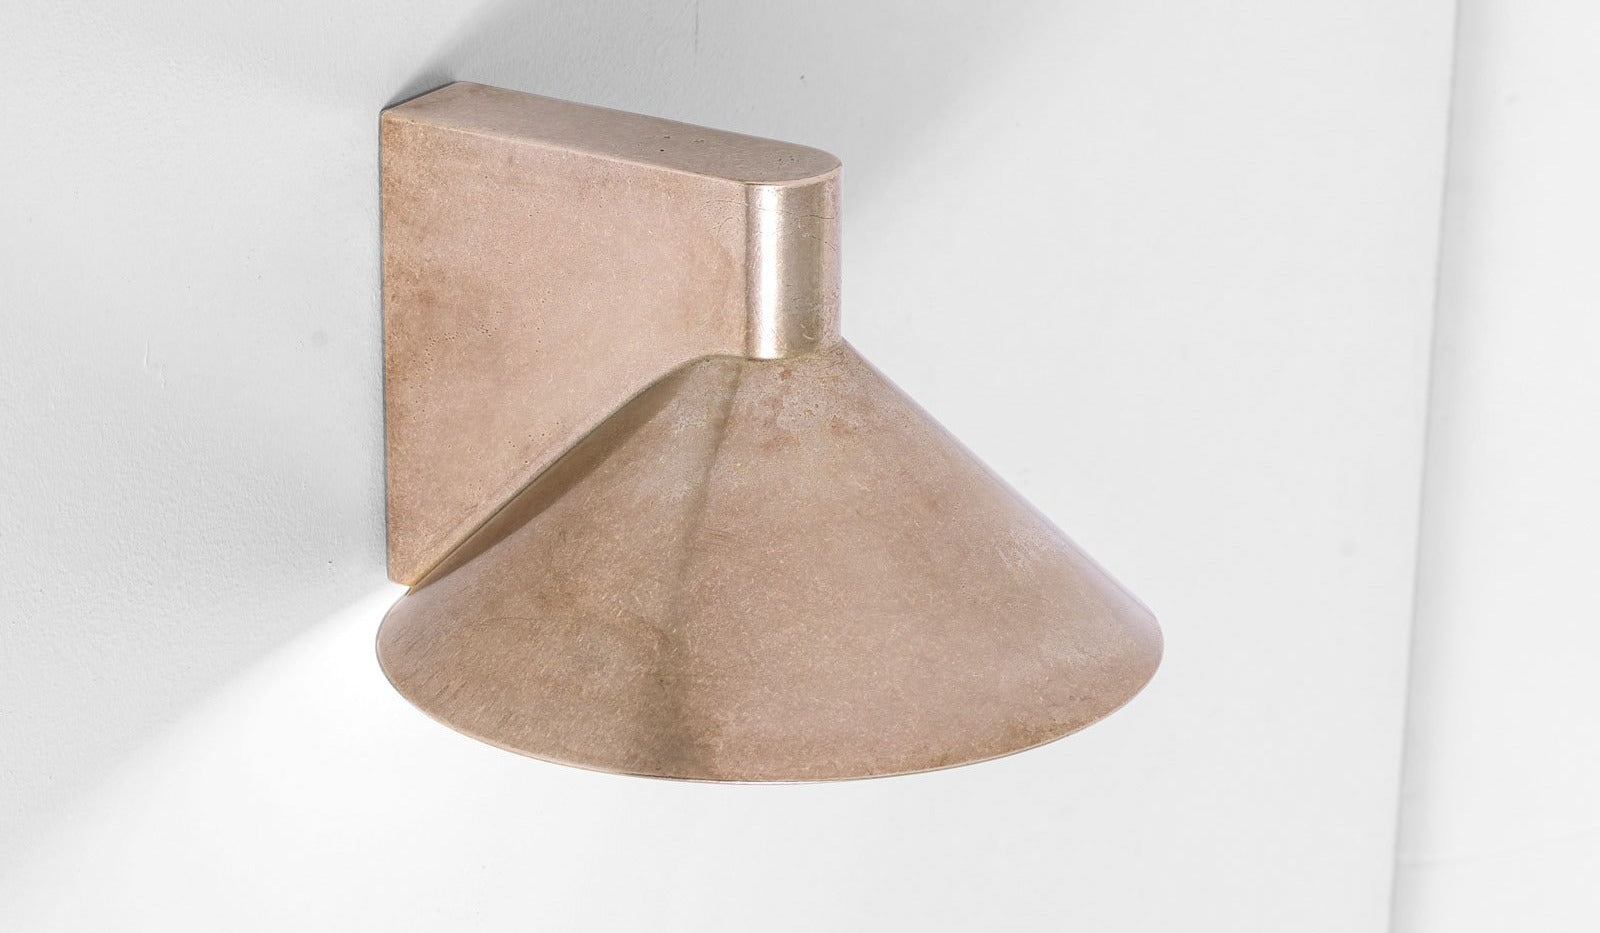 Studio Henry Wilson Polished Cast Bronze Conical Wall Light: Downward